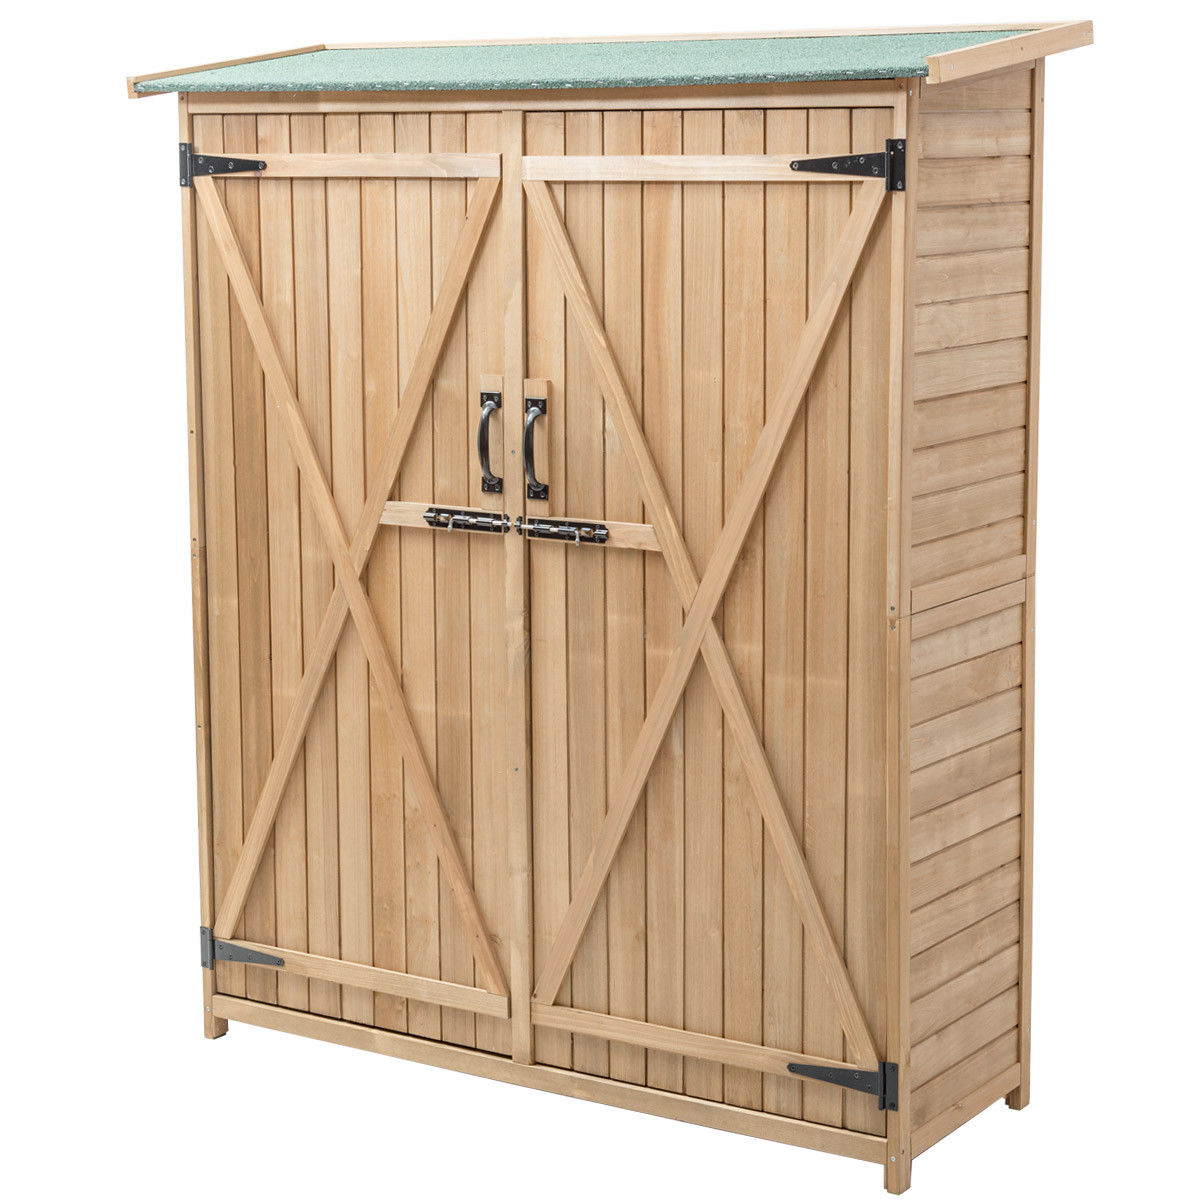 Gymax Garden Outdoor Wooden Storage Shed Cabinet Double Doors Fir Wood Lockers